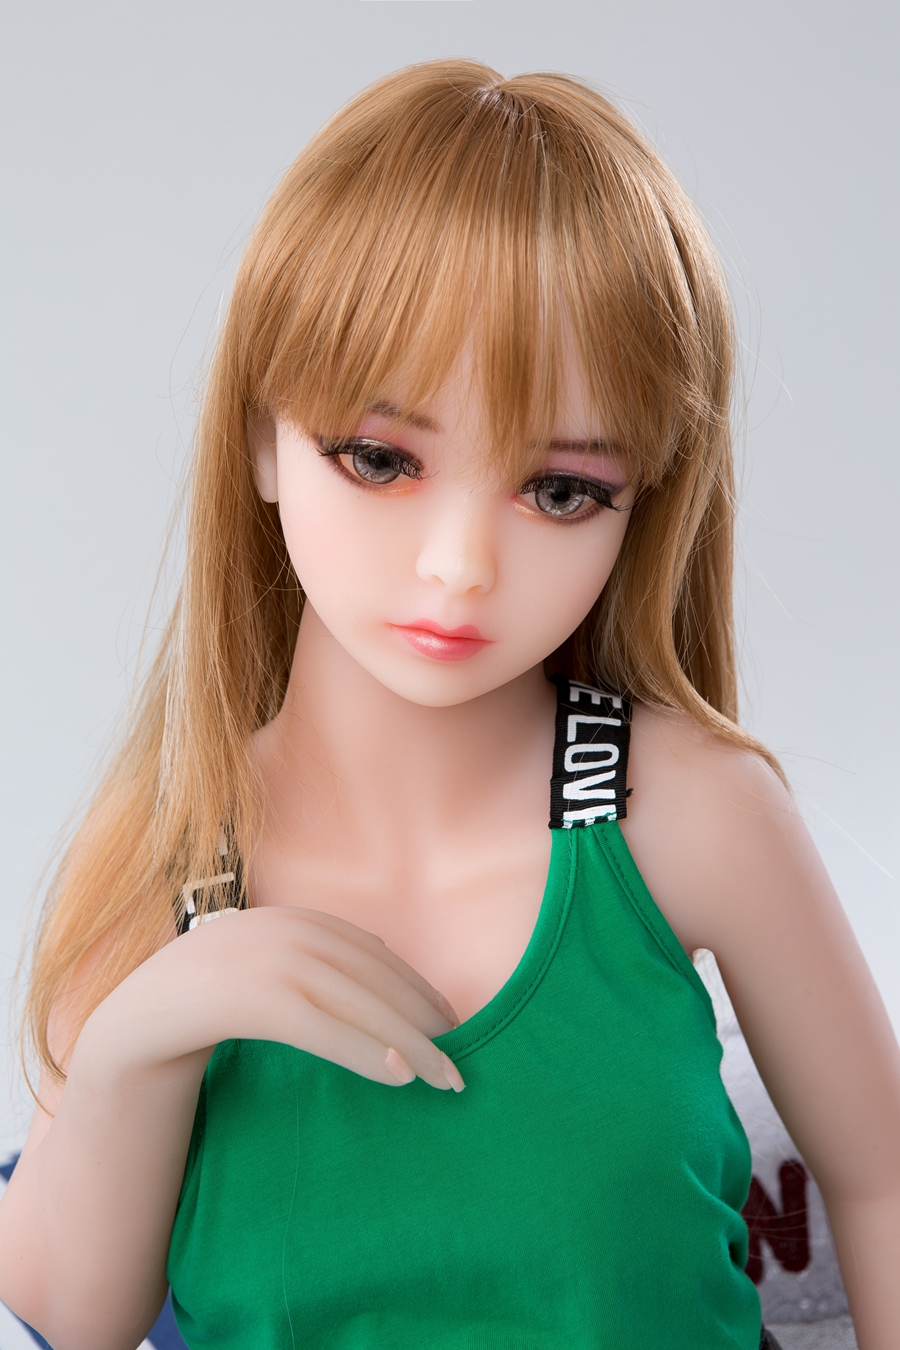 SEXDO 100CM Little Girl Sex Doll With Long Pink Hair